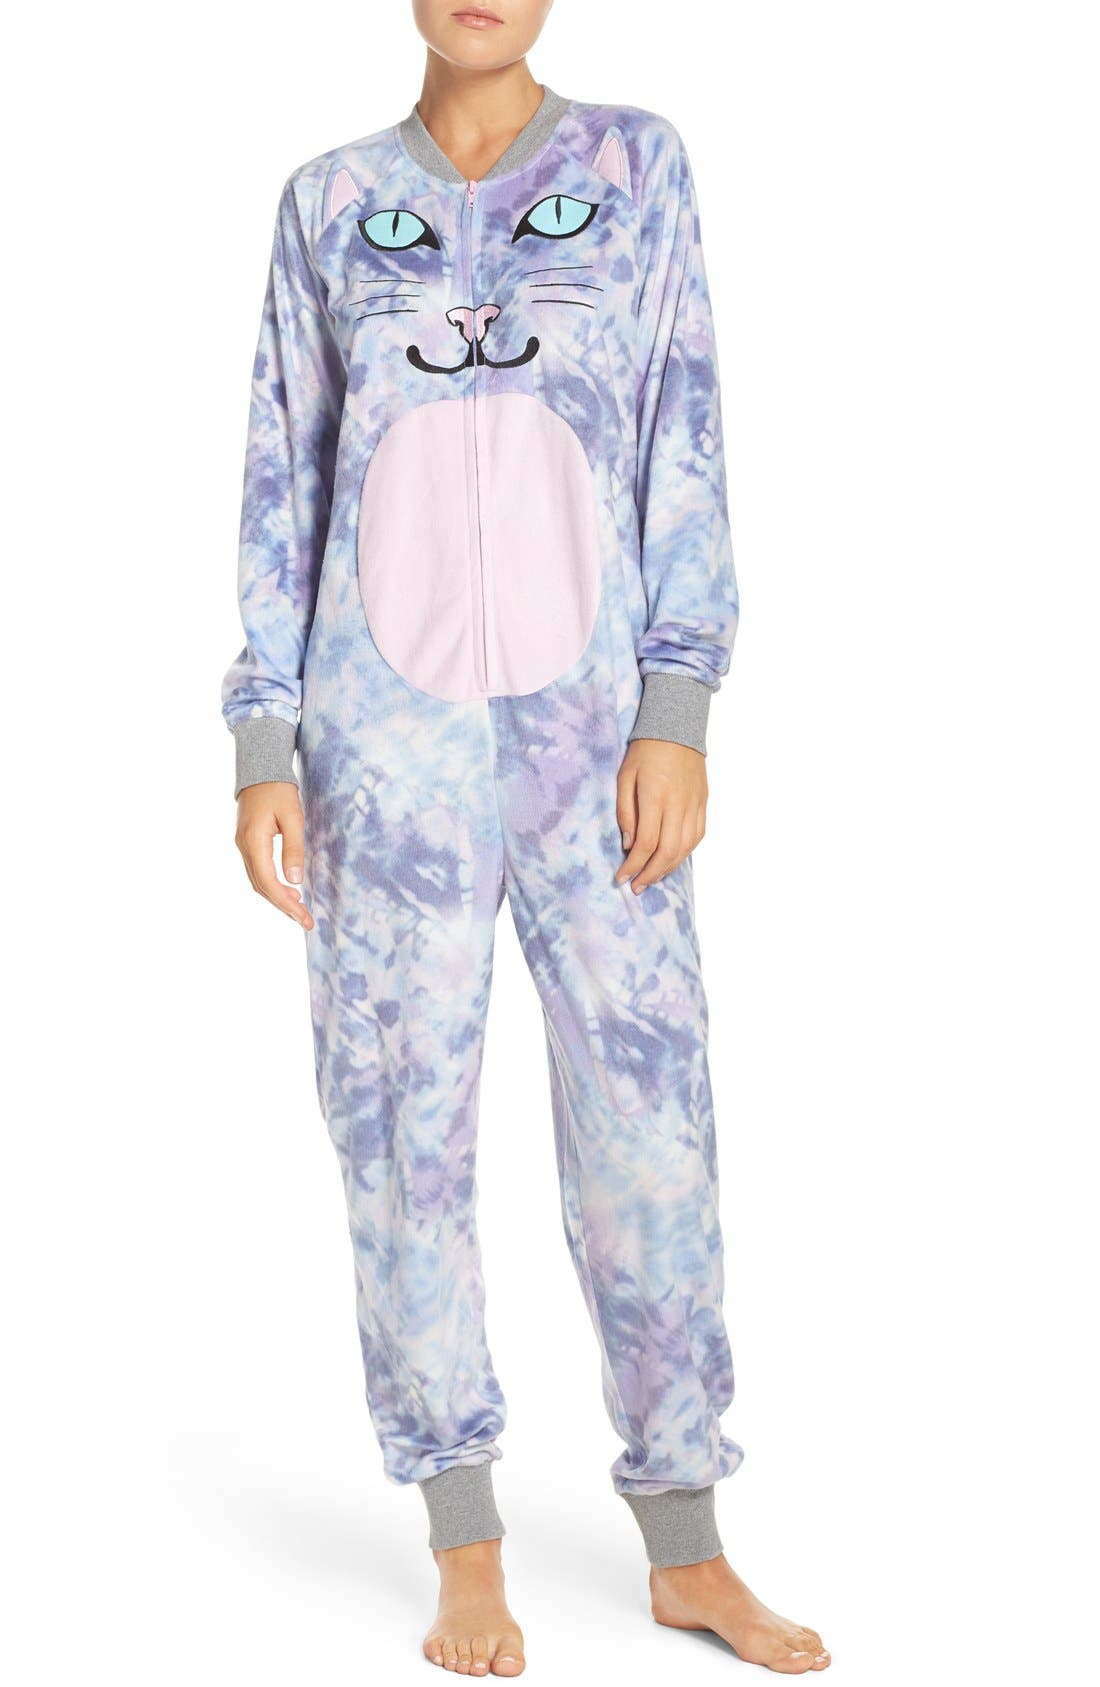 Main Image - COZY ZOE Critter One-Piece Pajamas